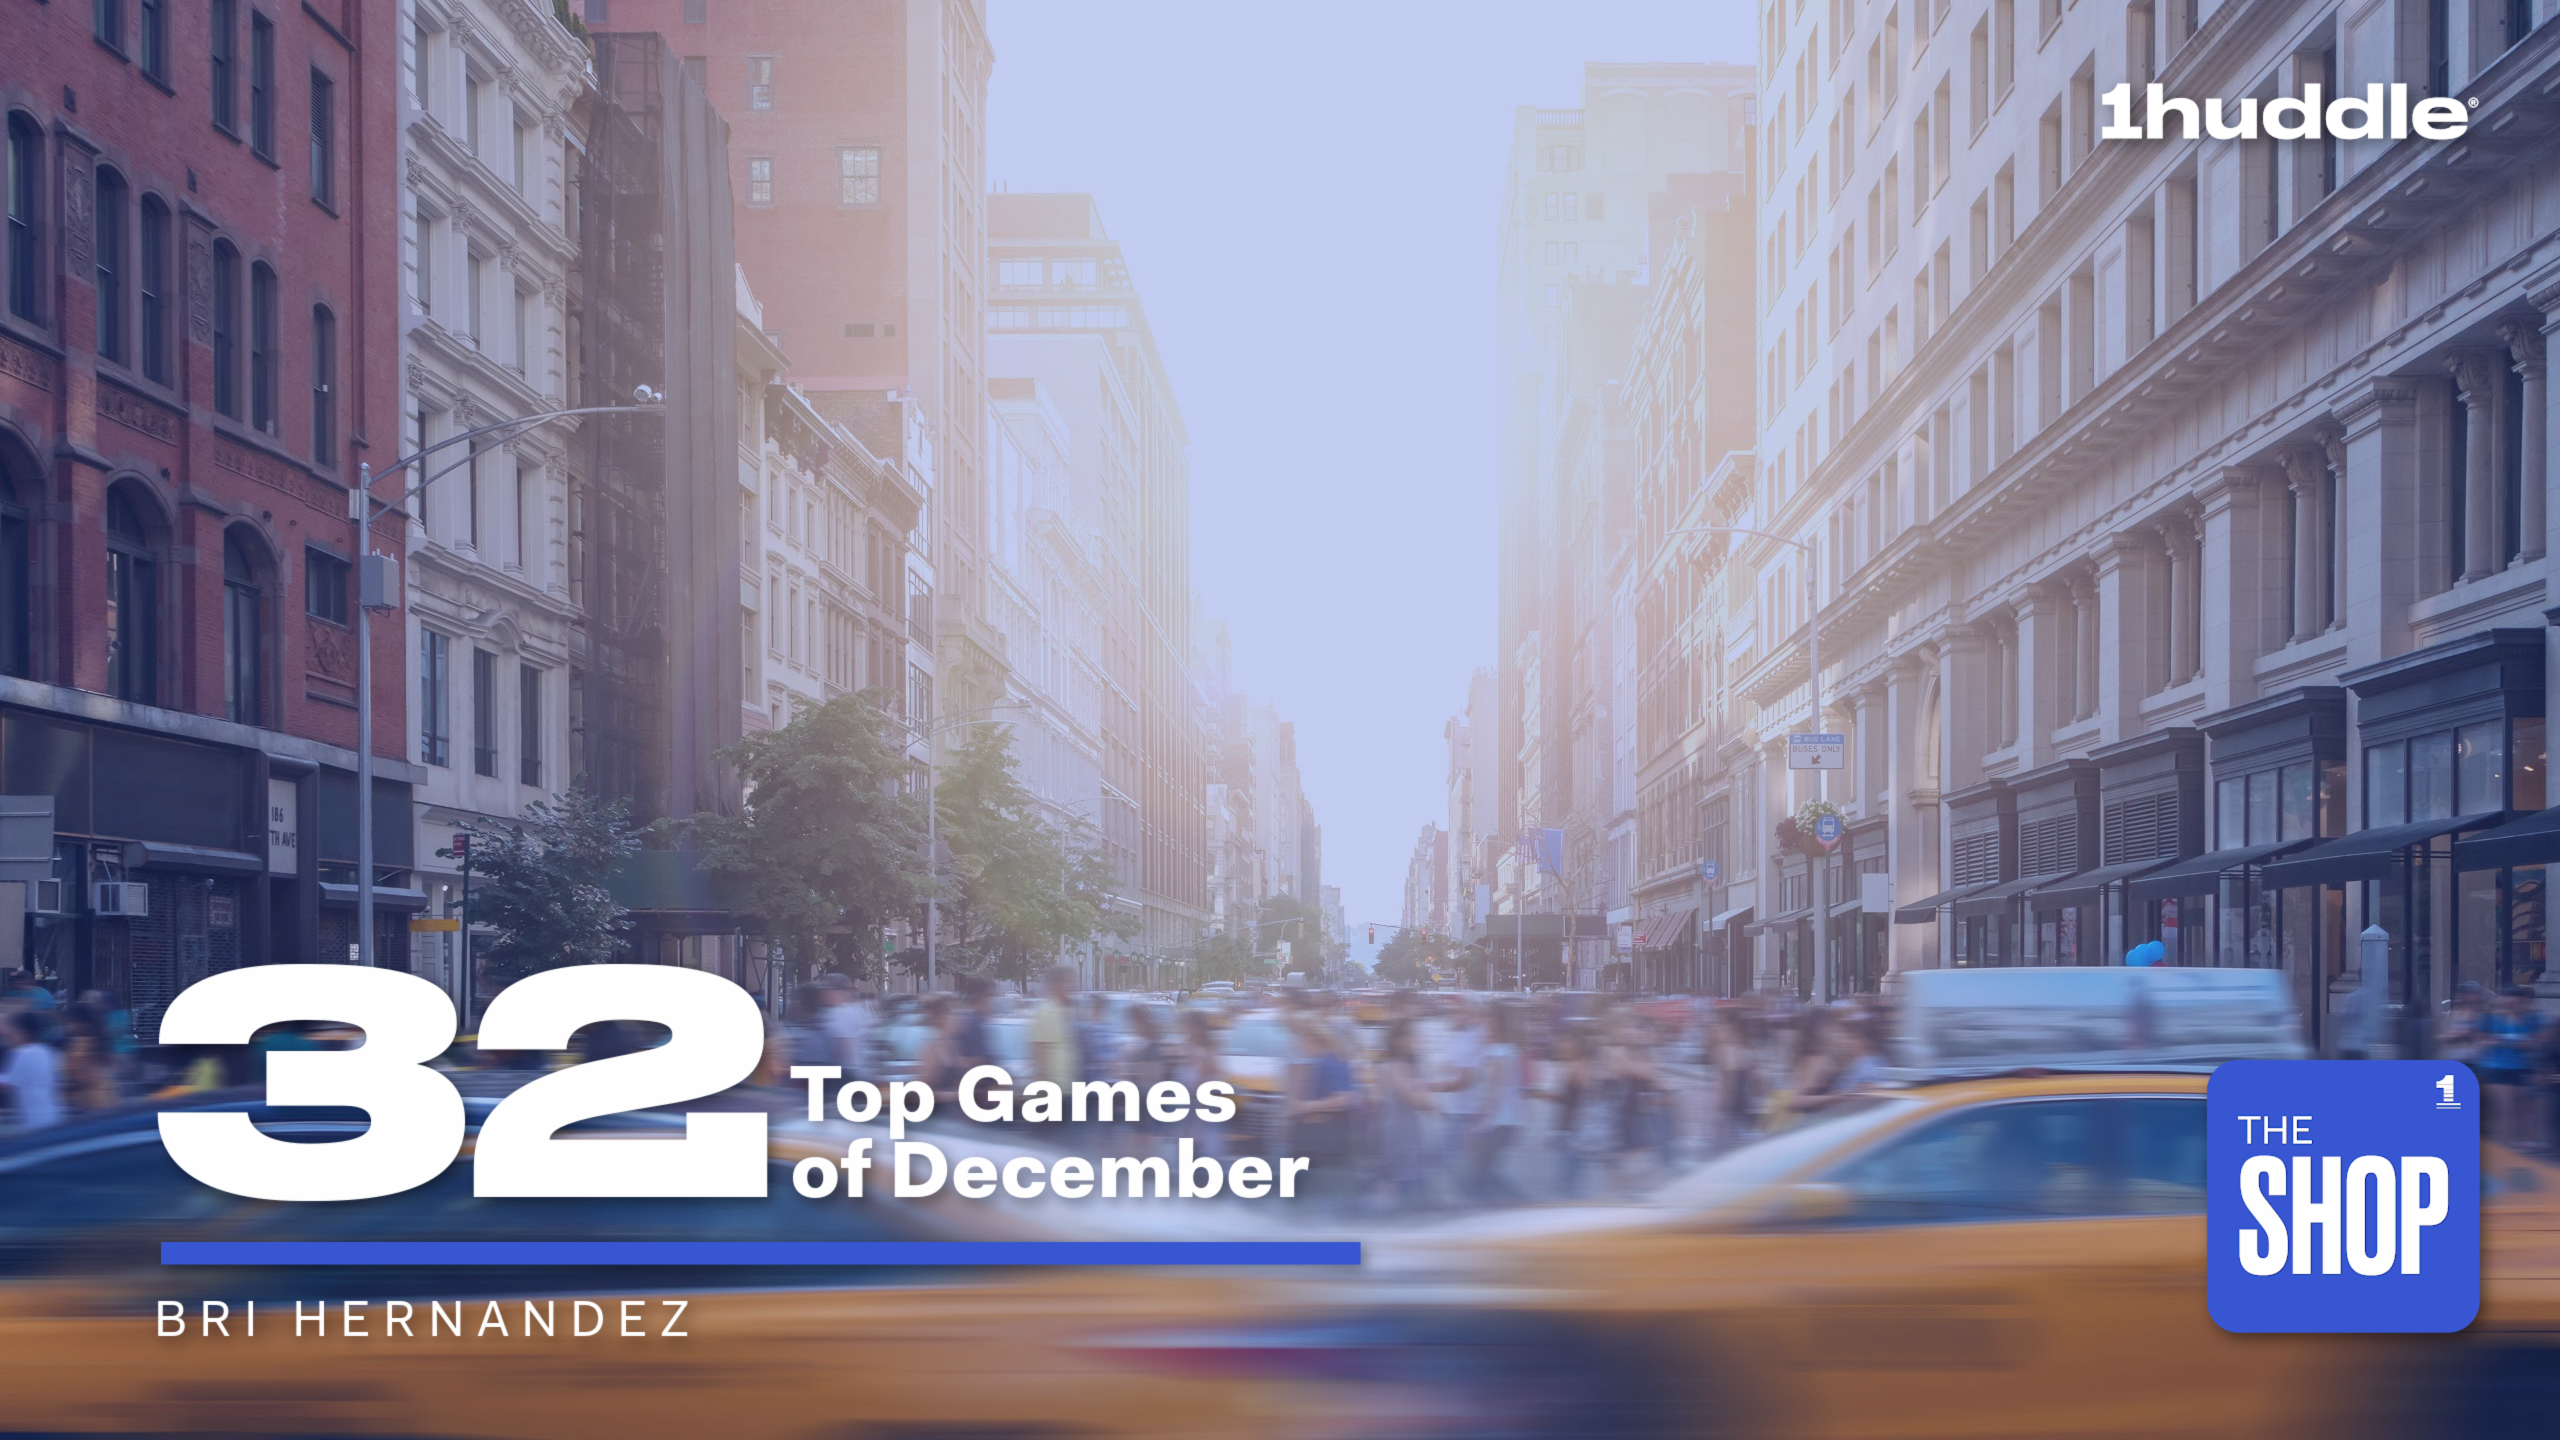 32 Top Games of December